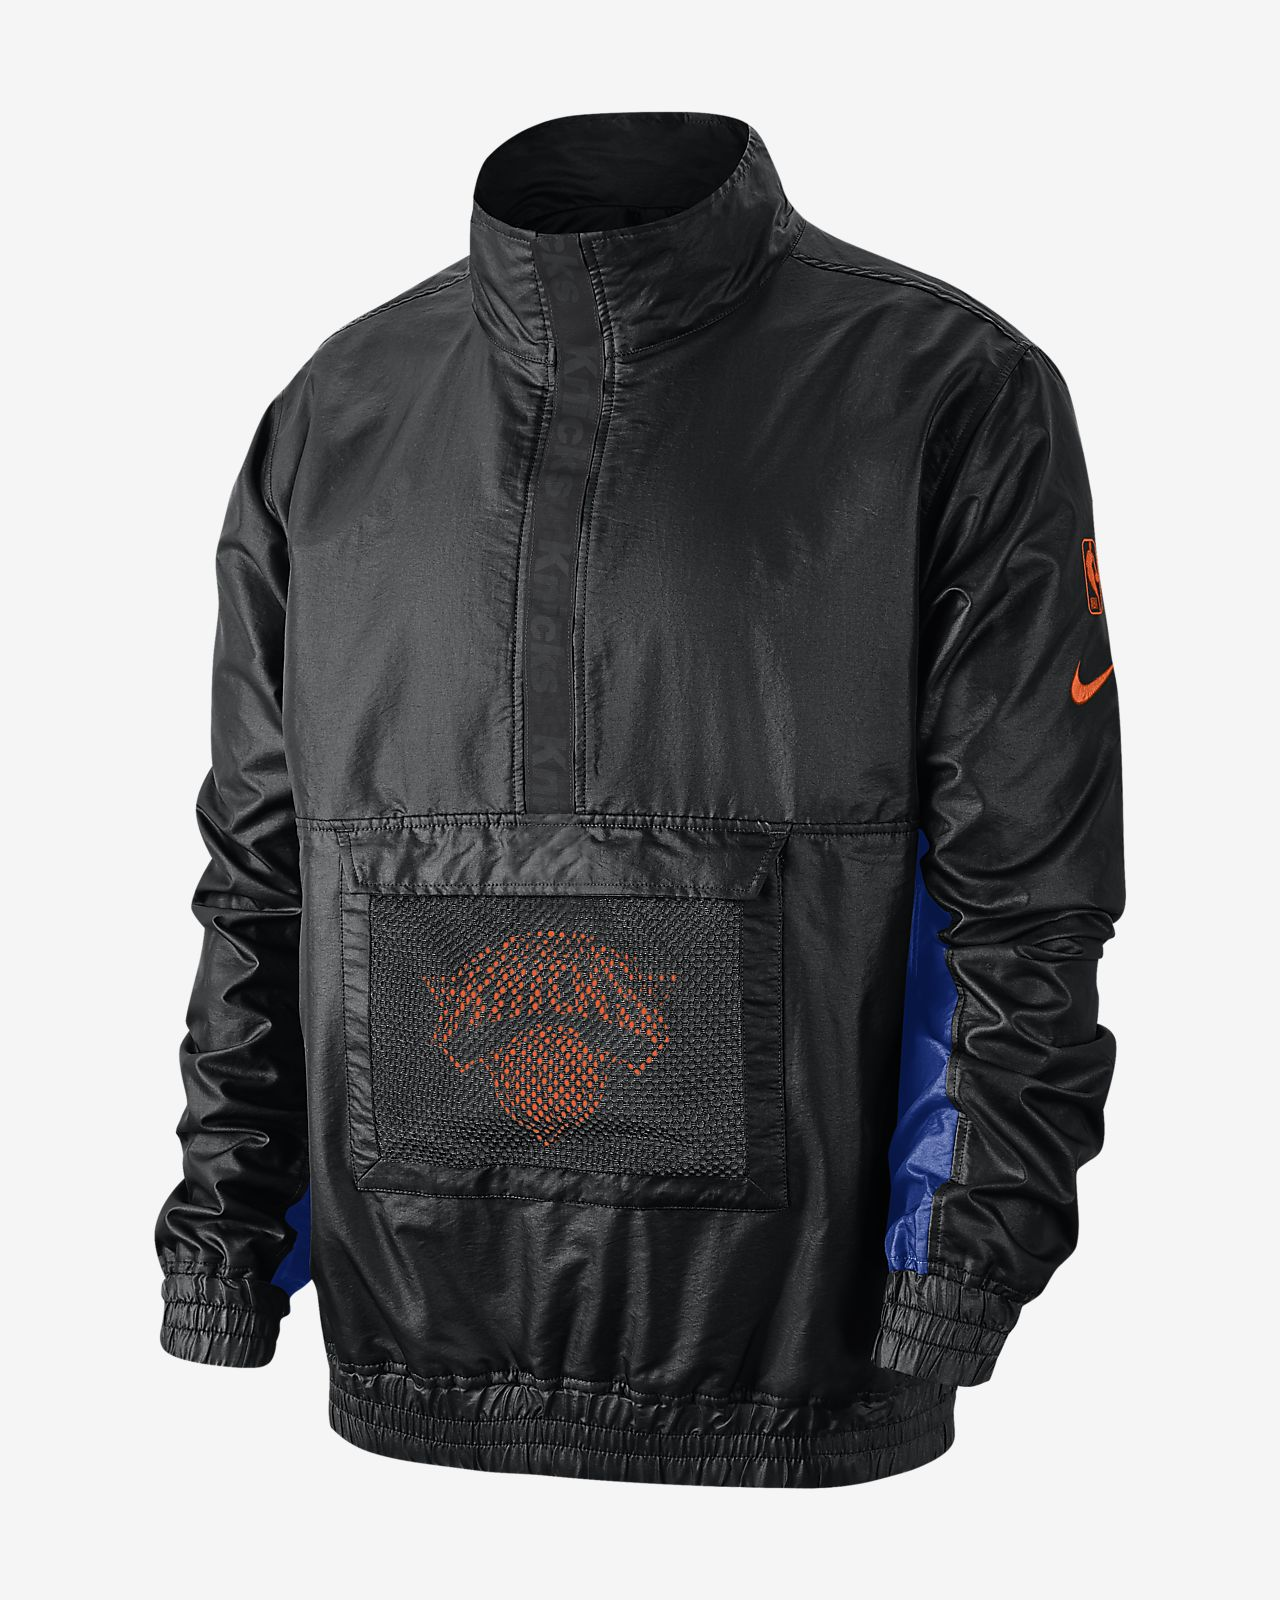 New York Knicks Nike Licht NBA-herenjack